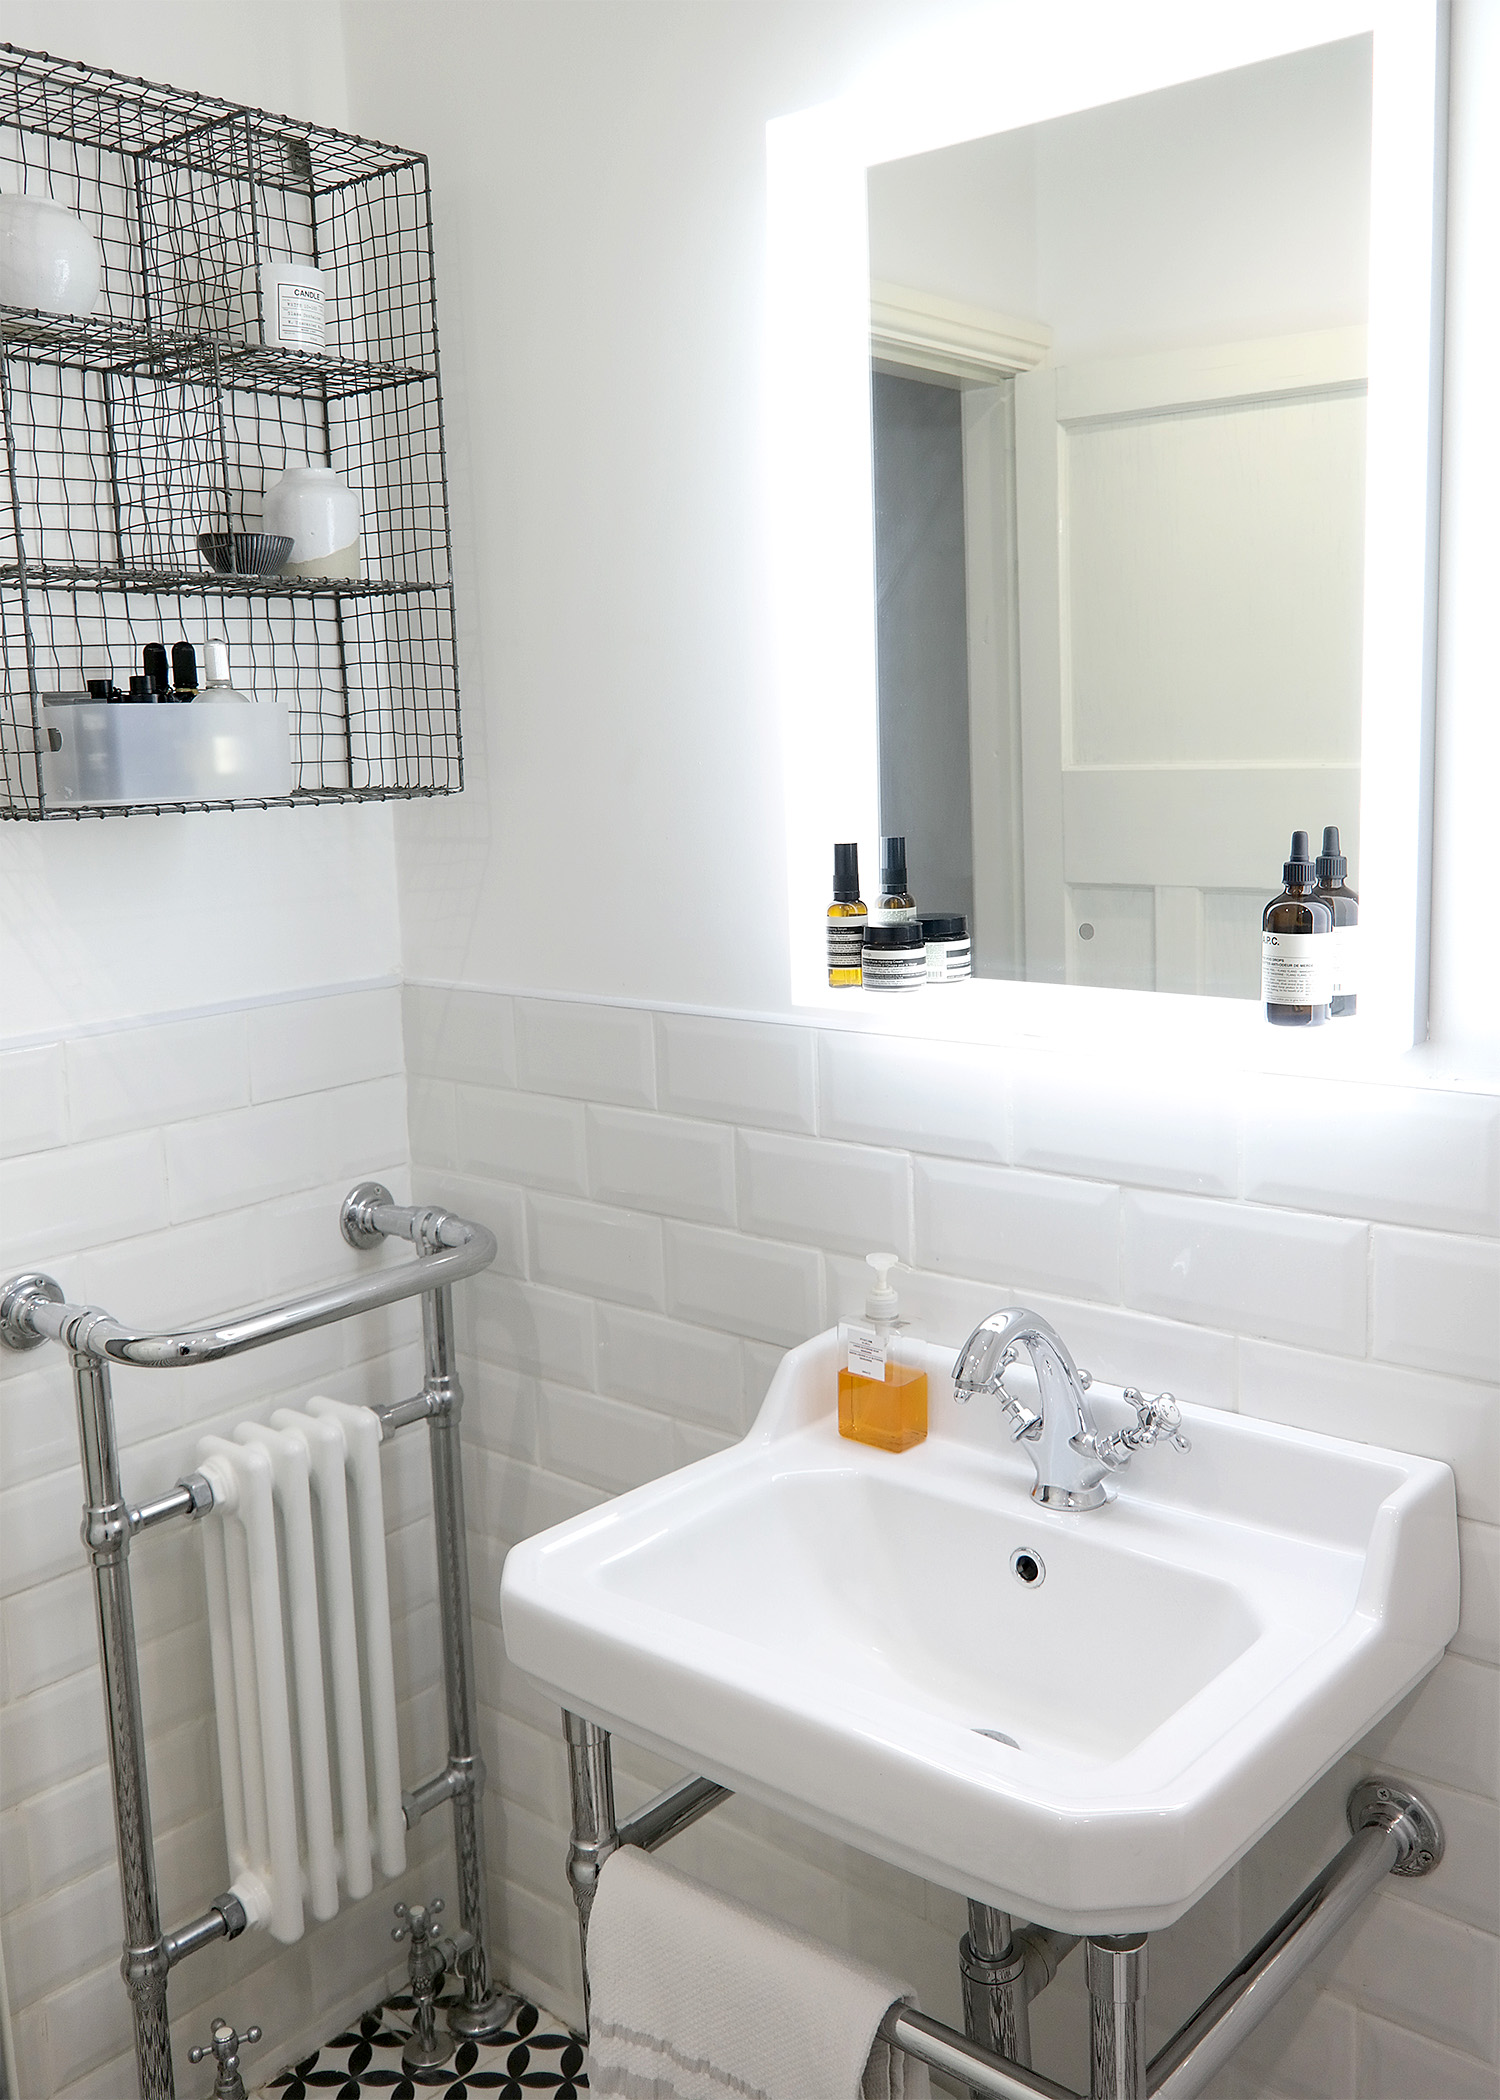 Joe's Traditional Wash Basin & Heated Towel Rail | Joe's Scandi-Style Vintage Bathroom - Birmingham